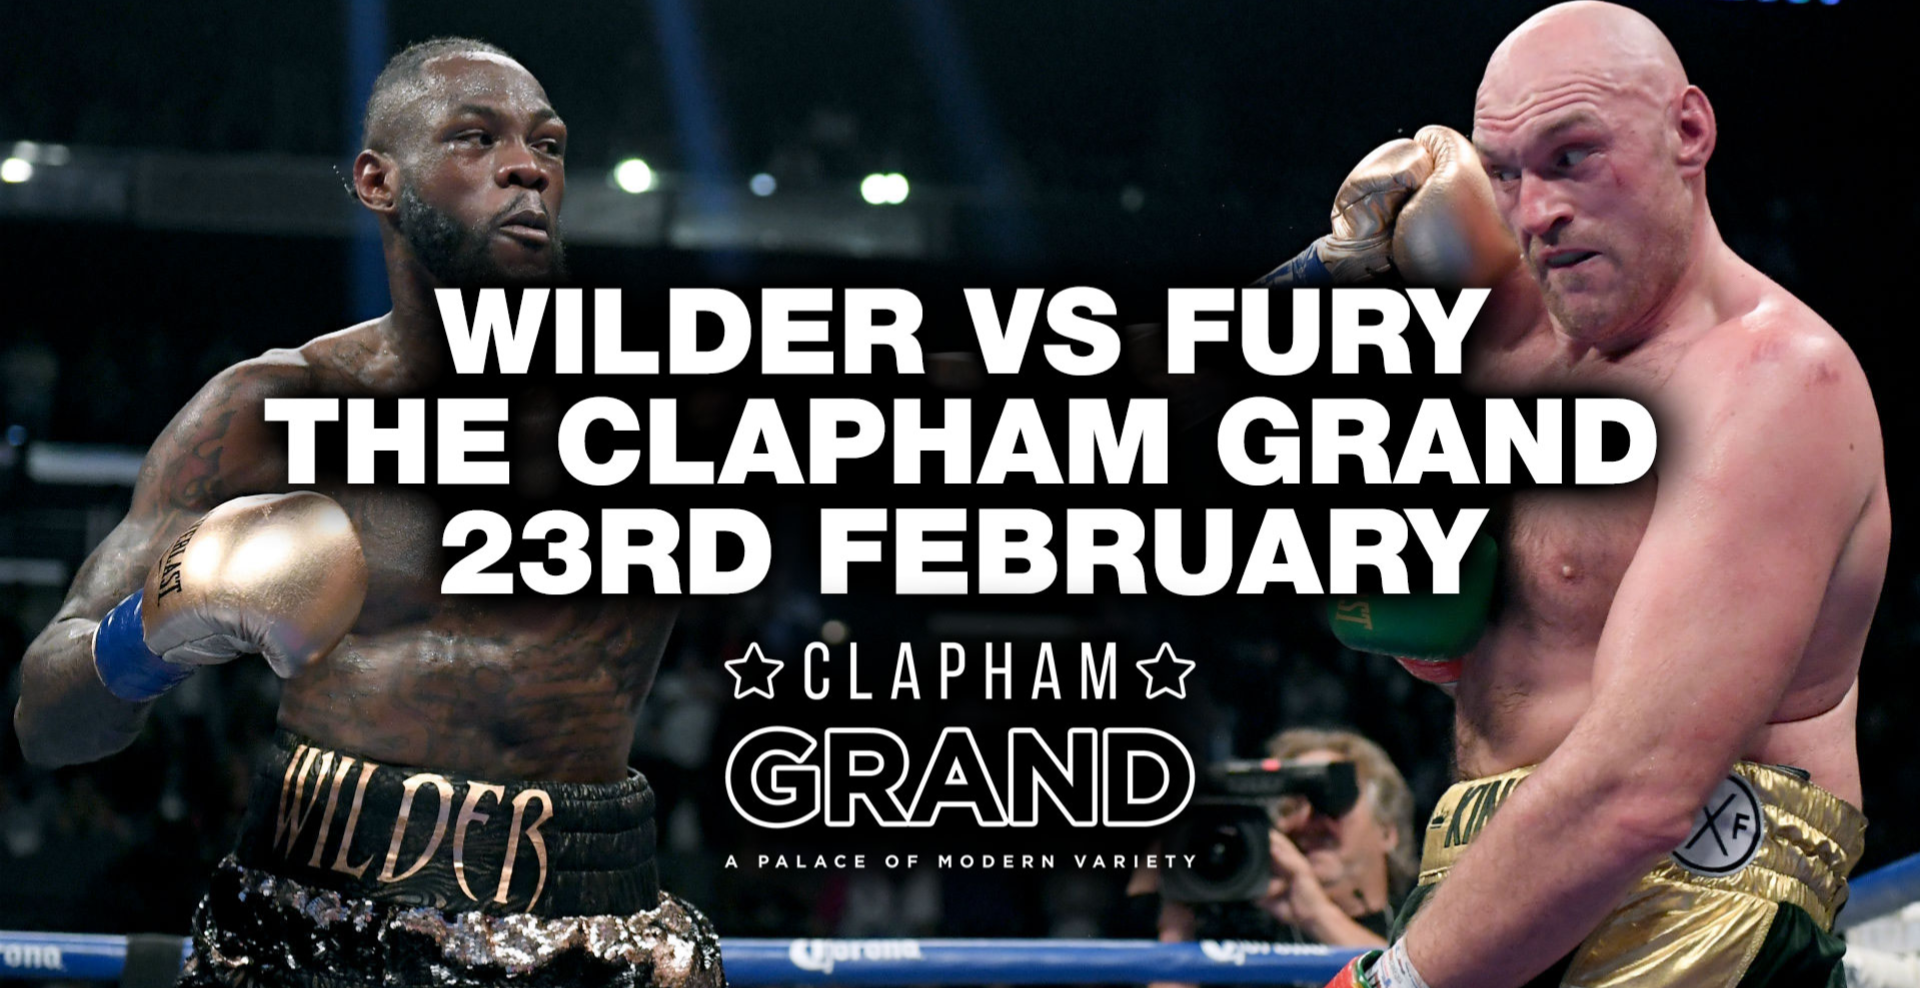 FURY vs WILDER - Watch the fight live!